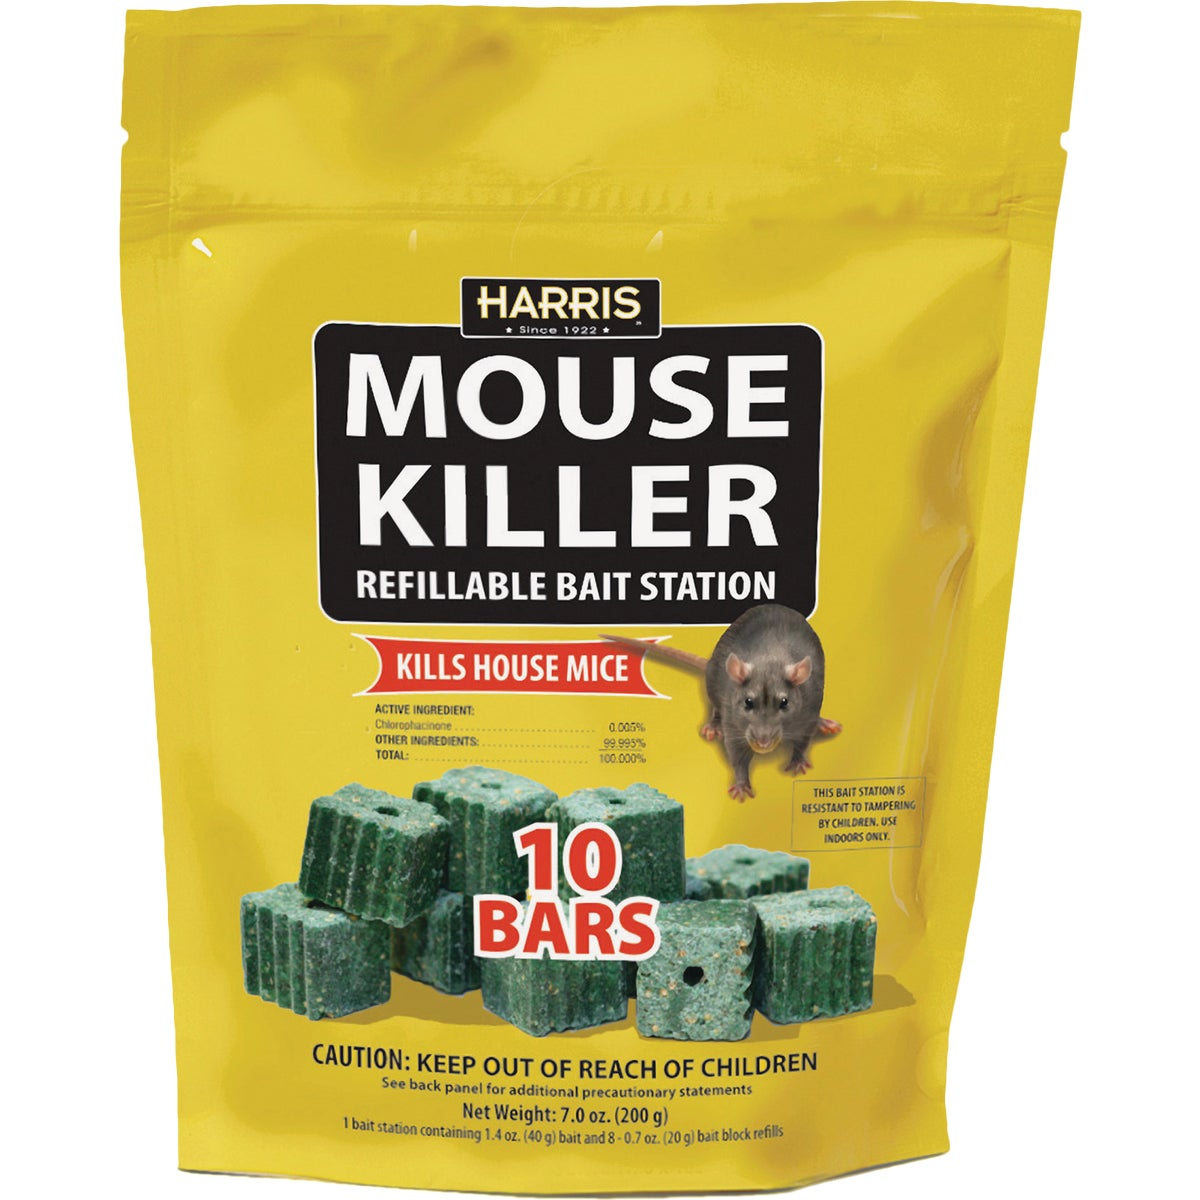 MOUSE BARS & REFILL STA - MBARS by Pf Harris Mfg Co Llc